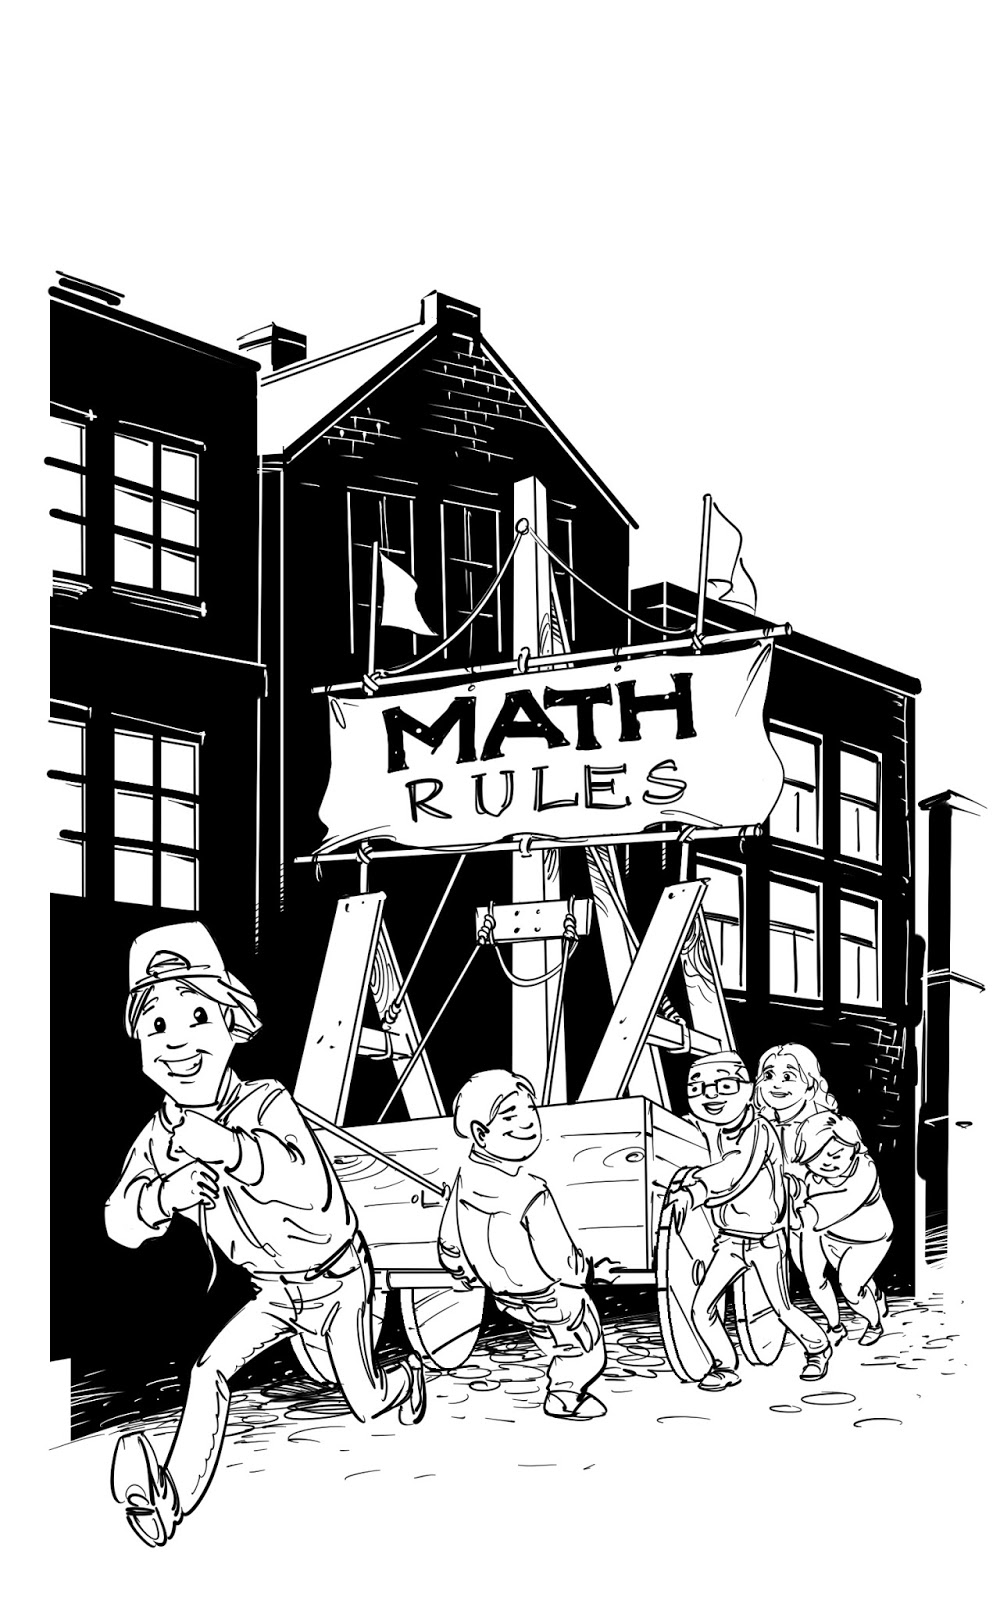 math inspector kids children's book illustration